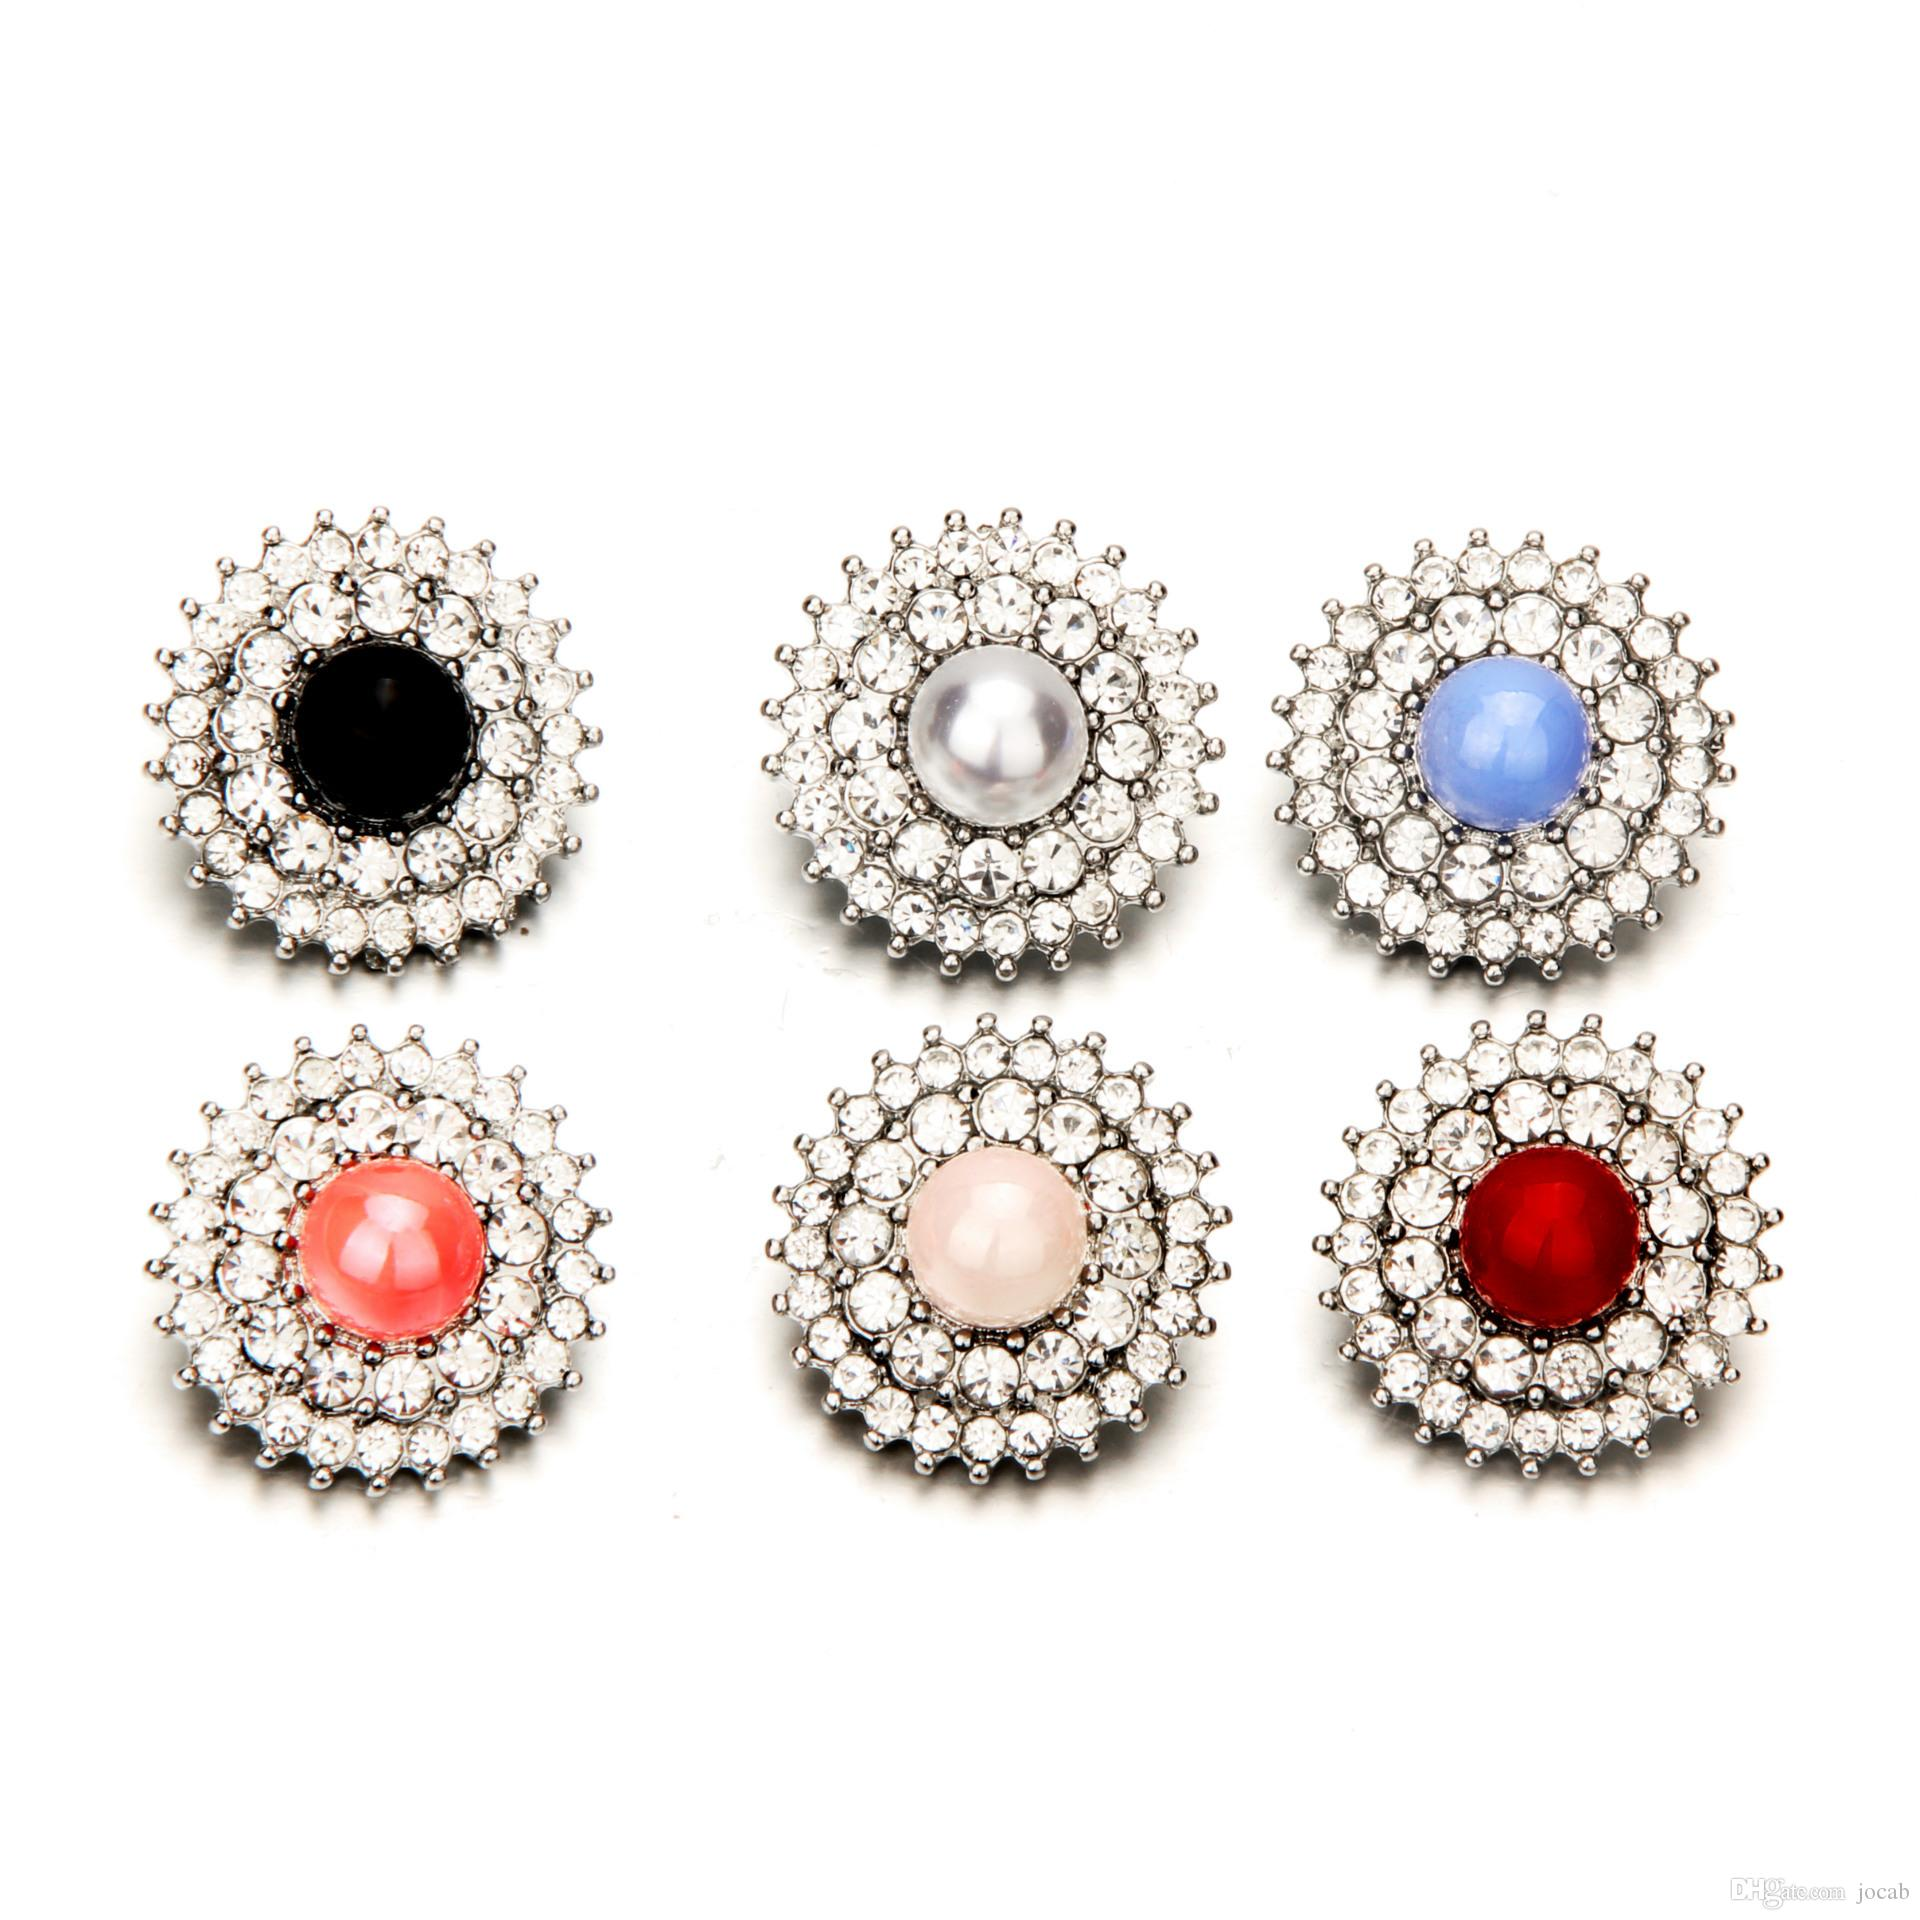 10X Rhinestones Pearl Crystal Buttons for DIY Bracelets Necklace Fashion Jewelry Wedding Decor Colthing Girl Hair Buckle Metal Accessories